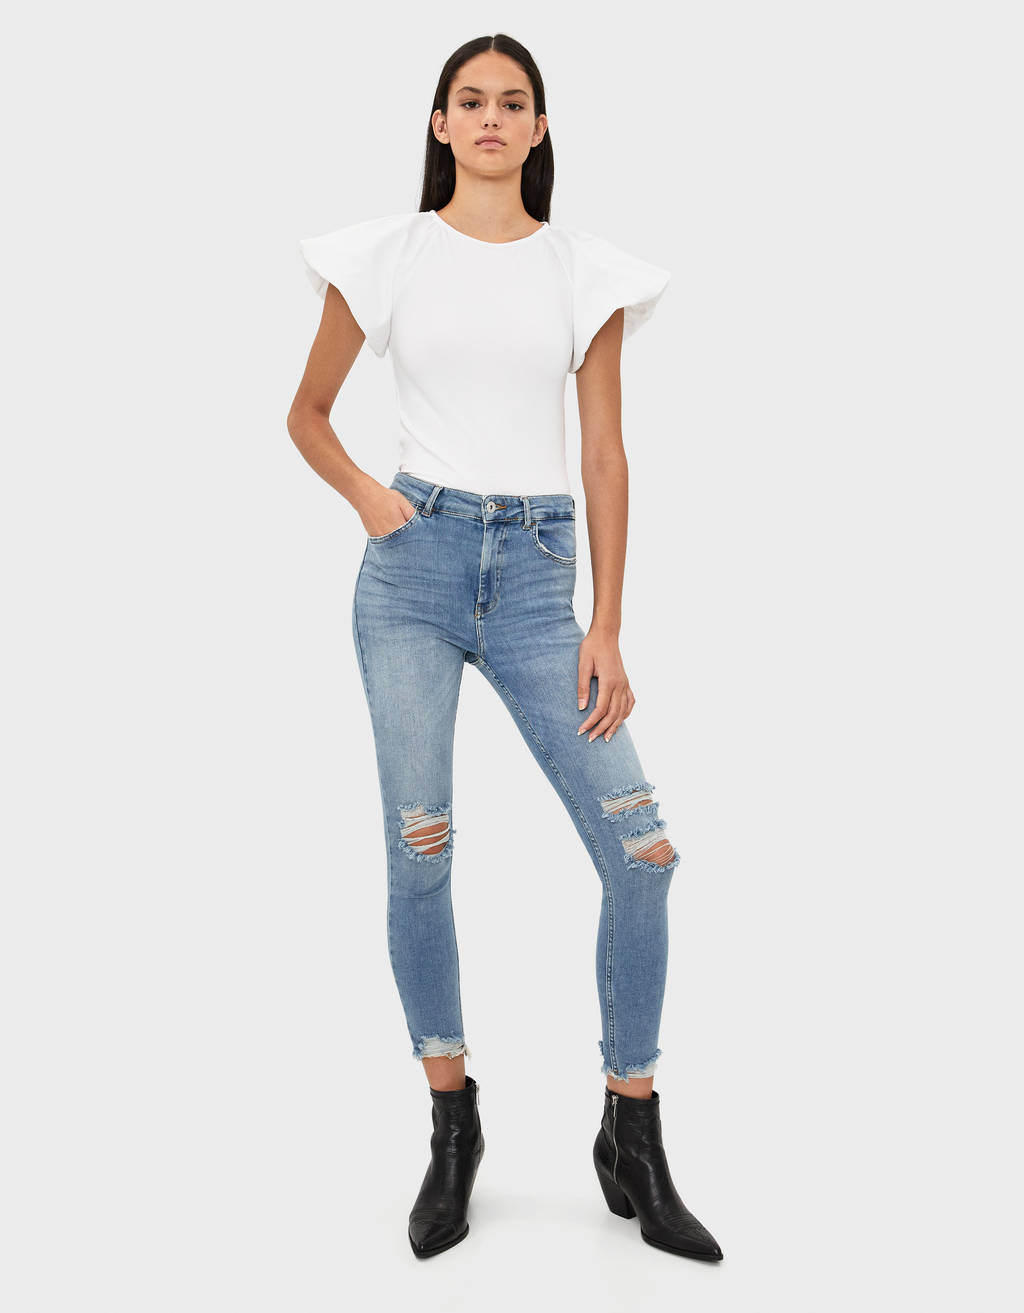 Jeans Skinny Fit High Waist con rotos